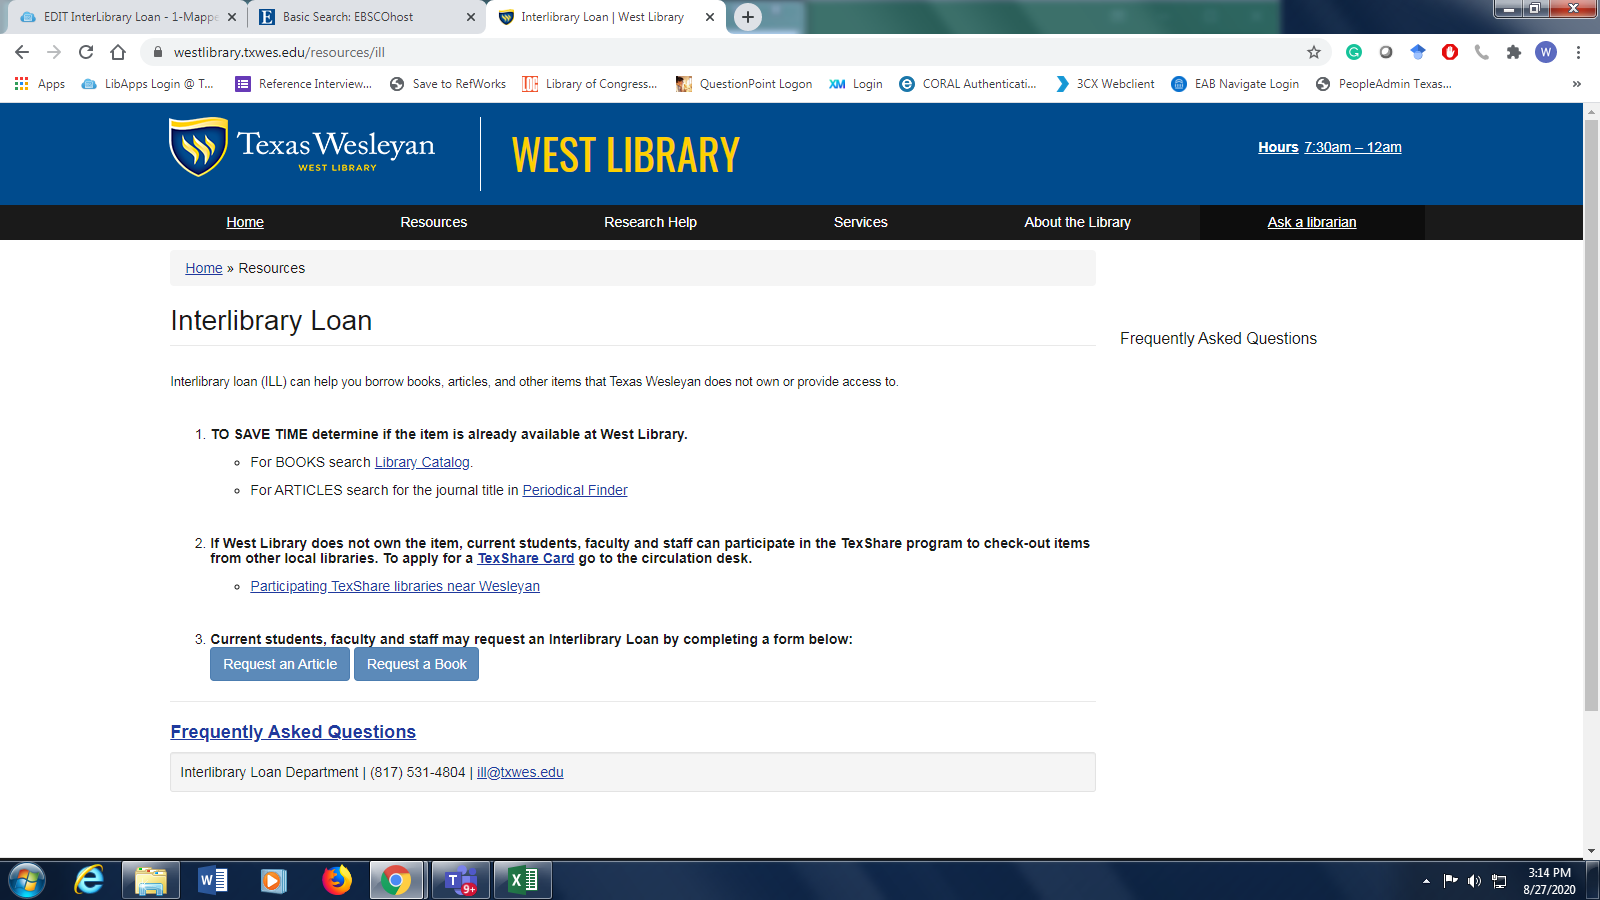 Screen capture of the Interlibrary Loan webpage.